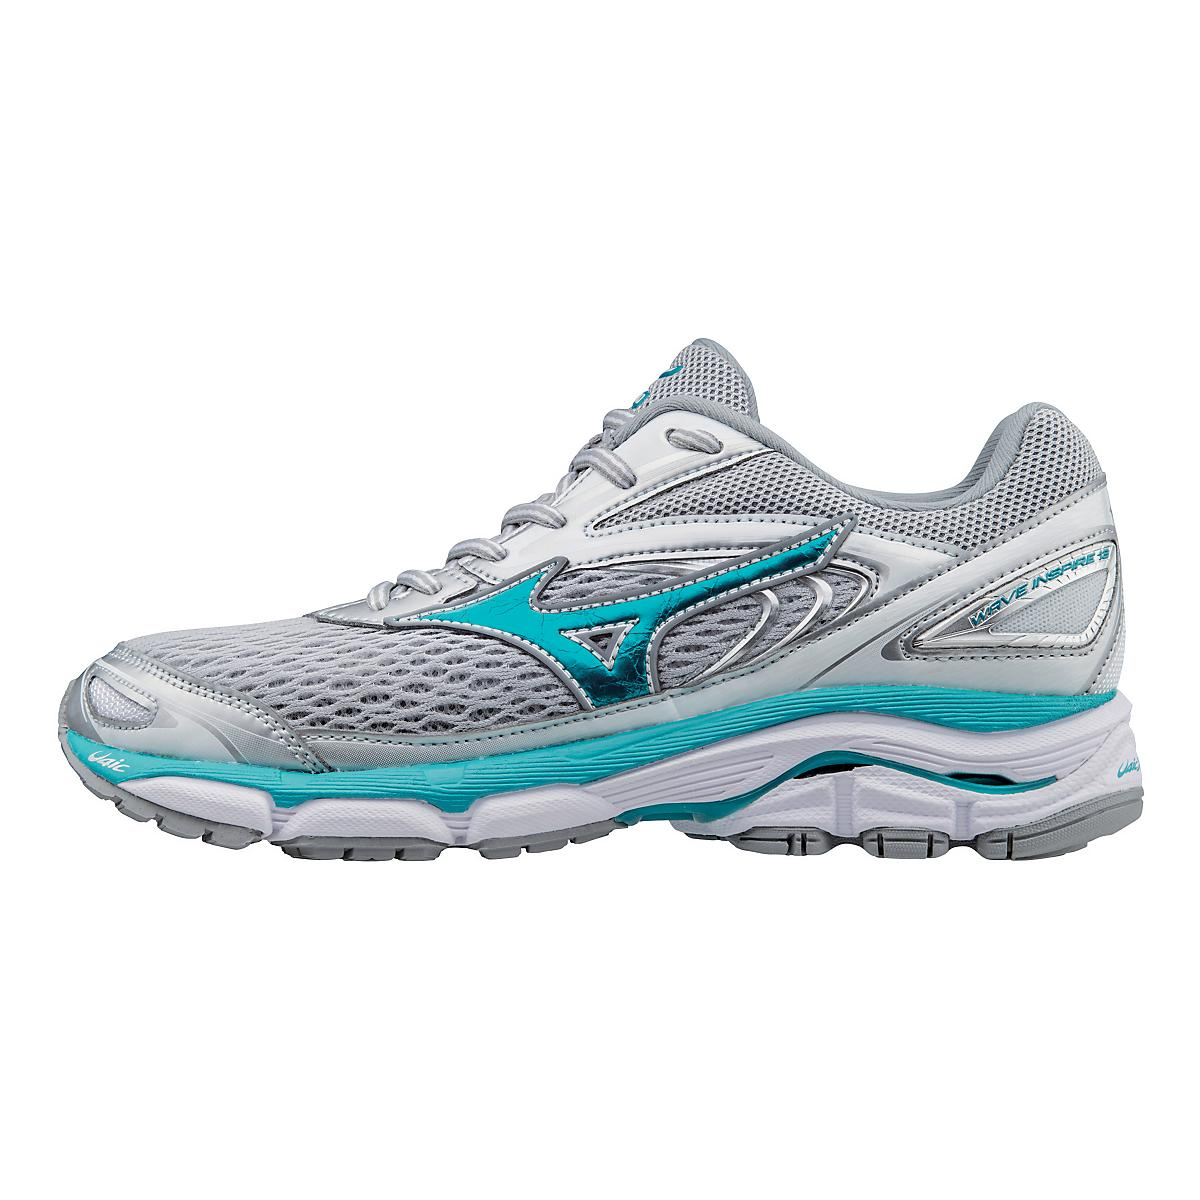 ea7fe9faa784 Mizuno Wave Inspire 13 Women's Running Shoes | Road Runner Sports